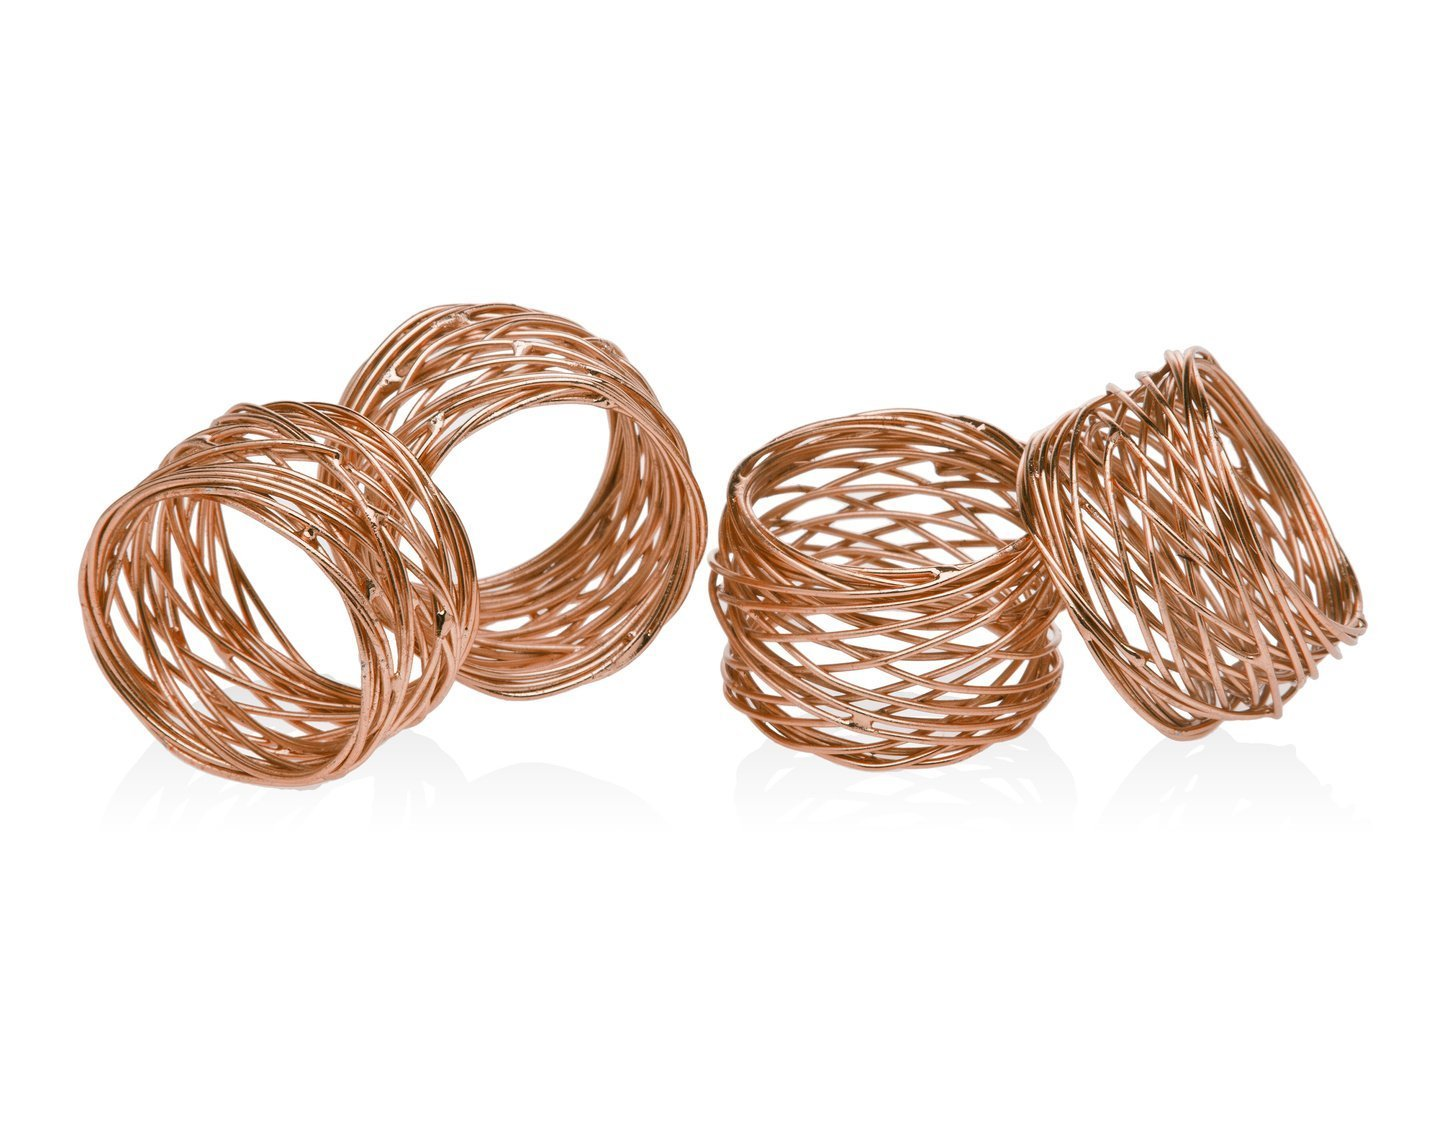 ITOS365 Handmade Round Mesh Napkin Rings Holder for Dinning Table Parties Everyday, Set of 6